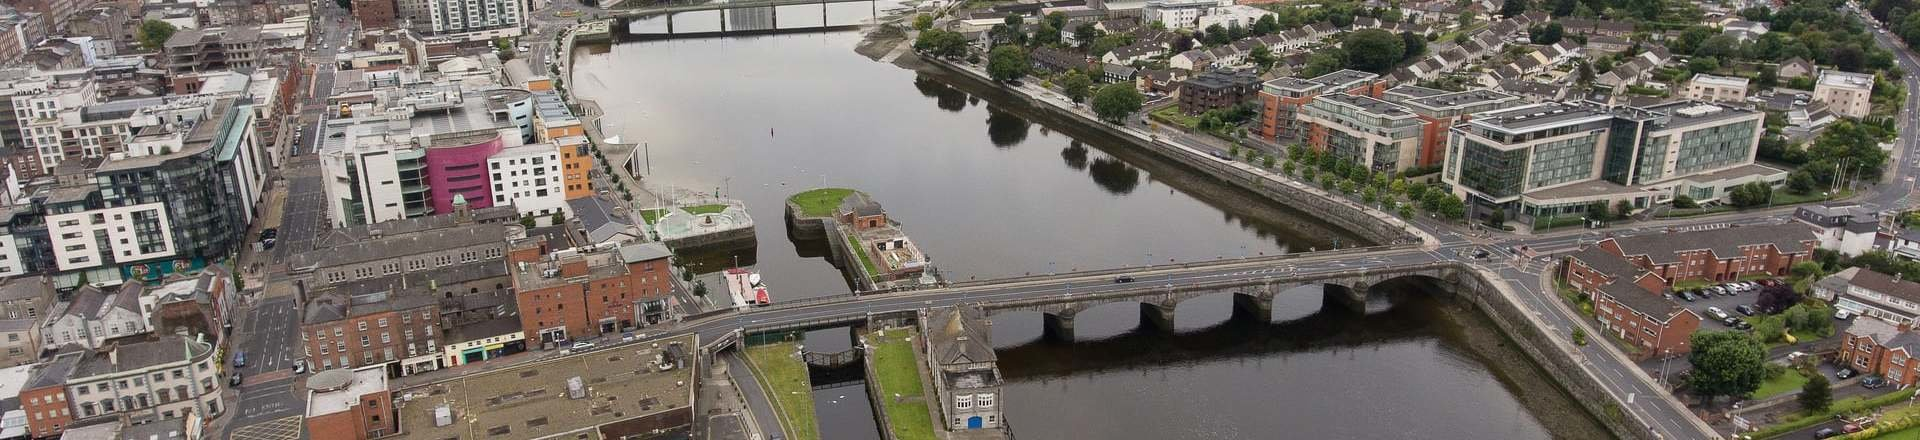 Cheap Hotels In Limerick From 50